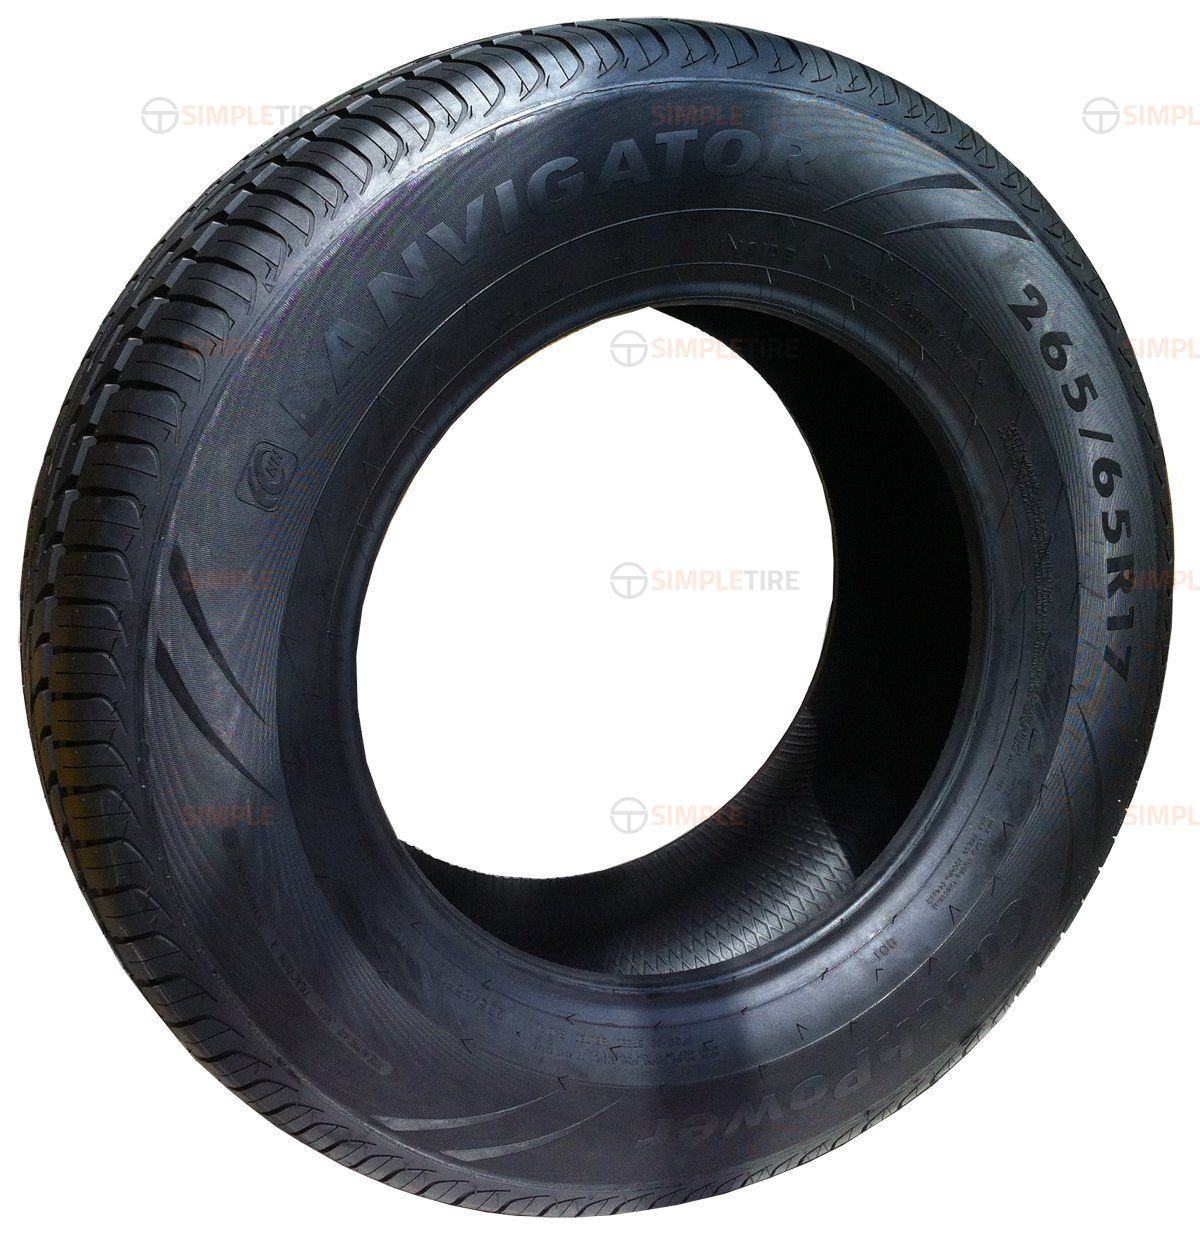 1084 P195/50R15 Catch Power Lanvigator